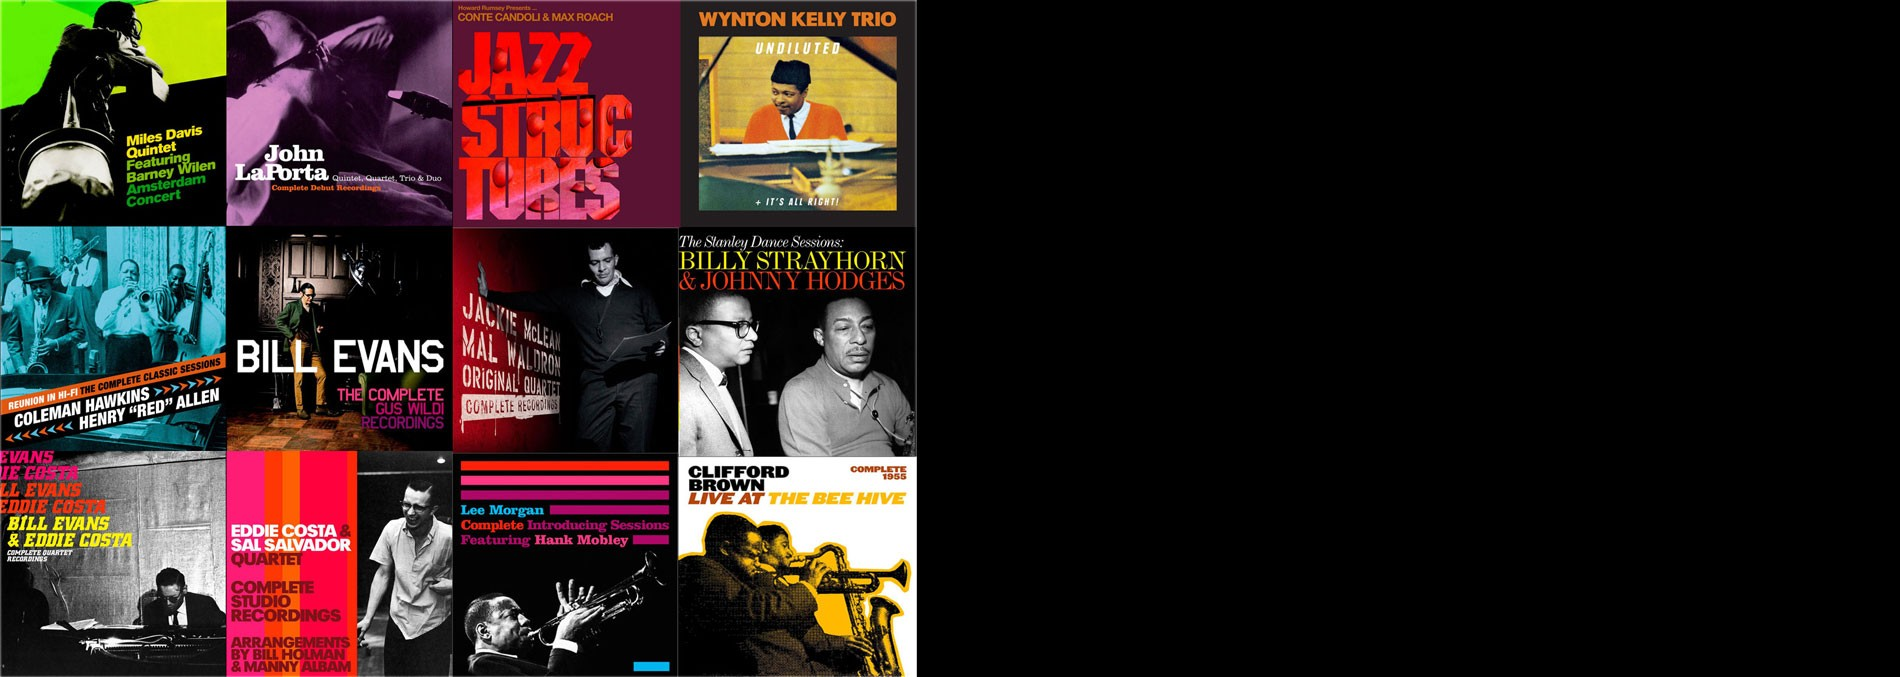 COLLECTOR'S JAZZ CD EDITIONS ON SALE